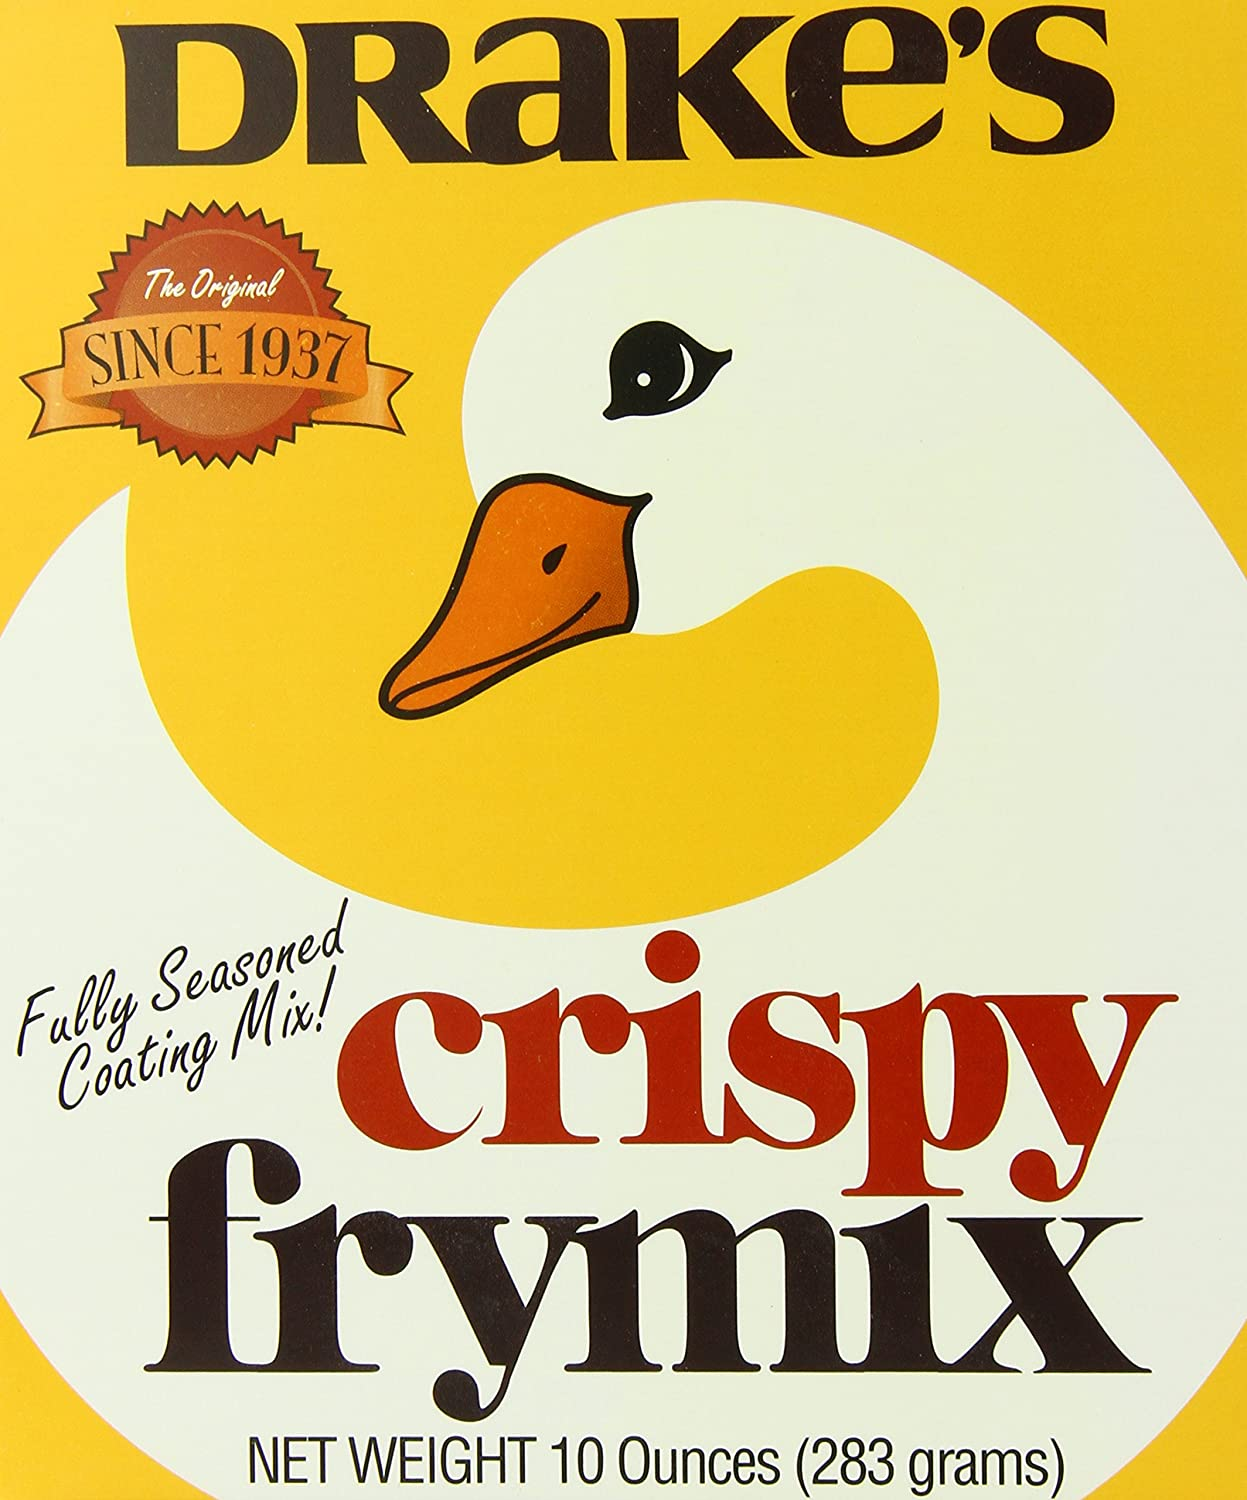 Drakes Crispy FryMix 10-Ounce We OFFer at cheap prices New product type Boxes Pack of 12